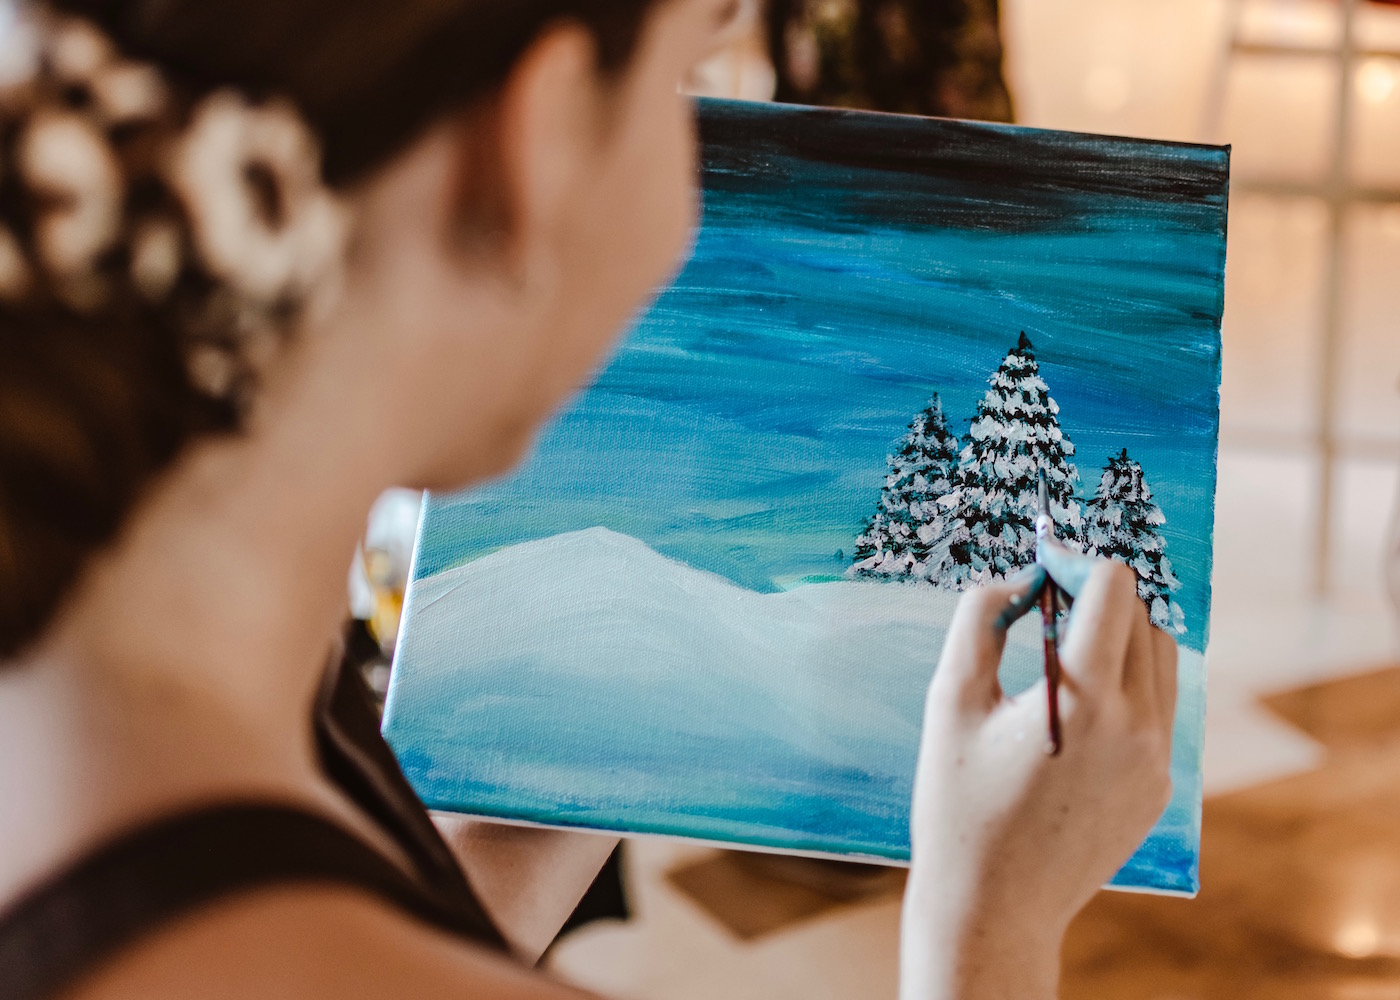 Try this: An Art & Wine workshop at DFS Bali, with Christmas carols & plenty of festive cheer!